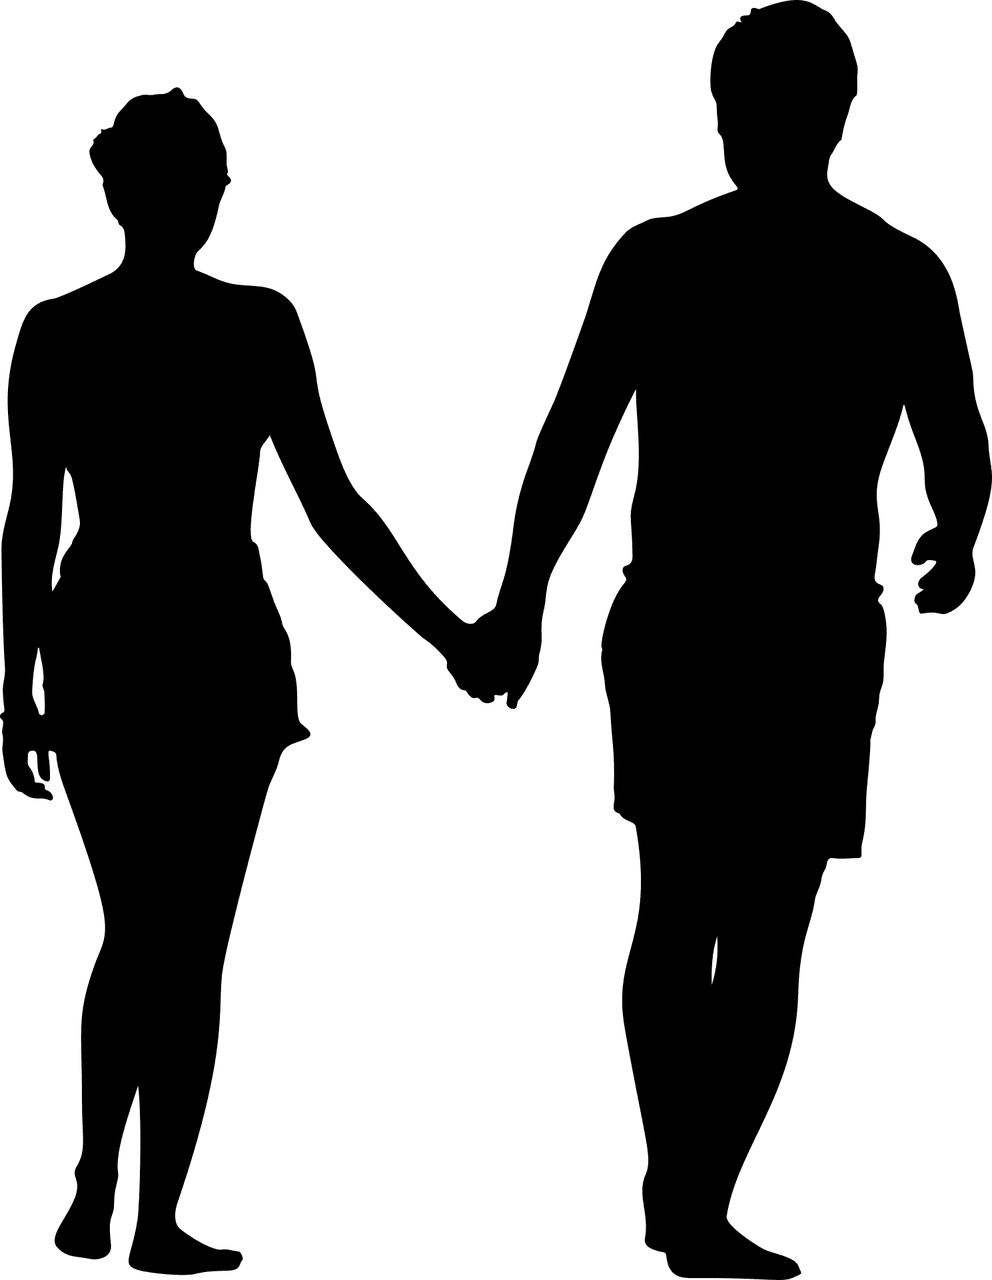 A silhouette of a couple holding hands. | Source: Pixabay